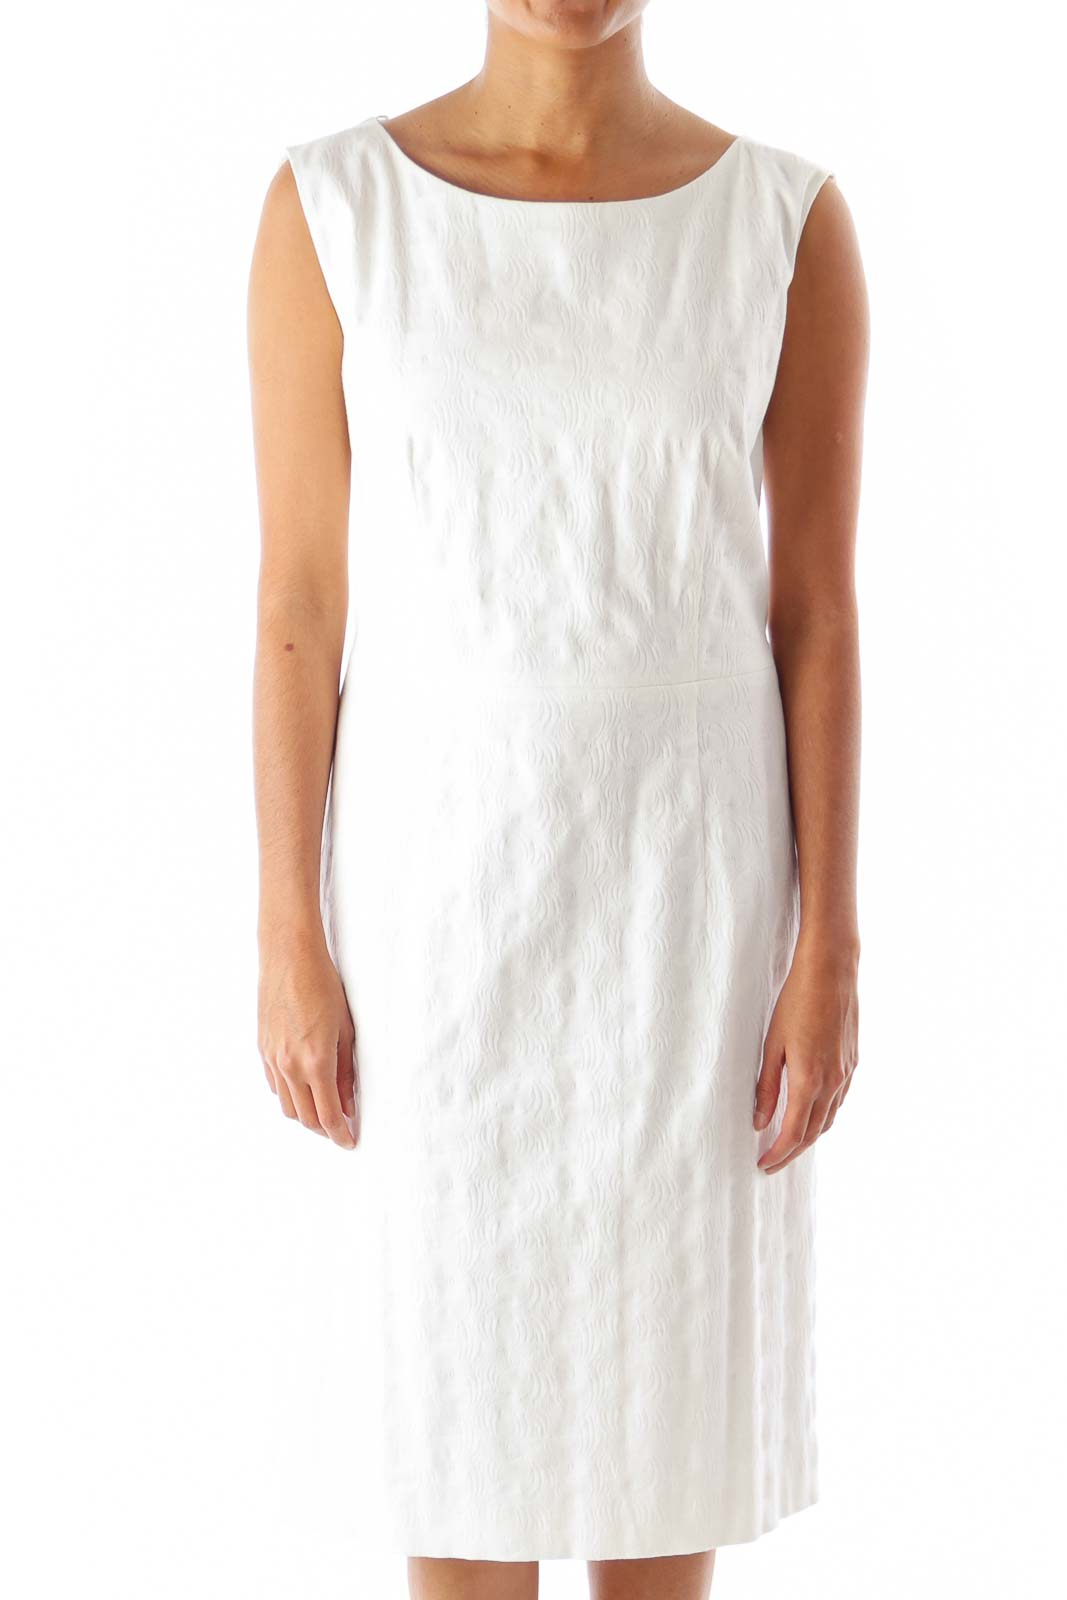 White Texture Straight Dress Front